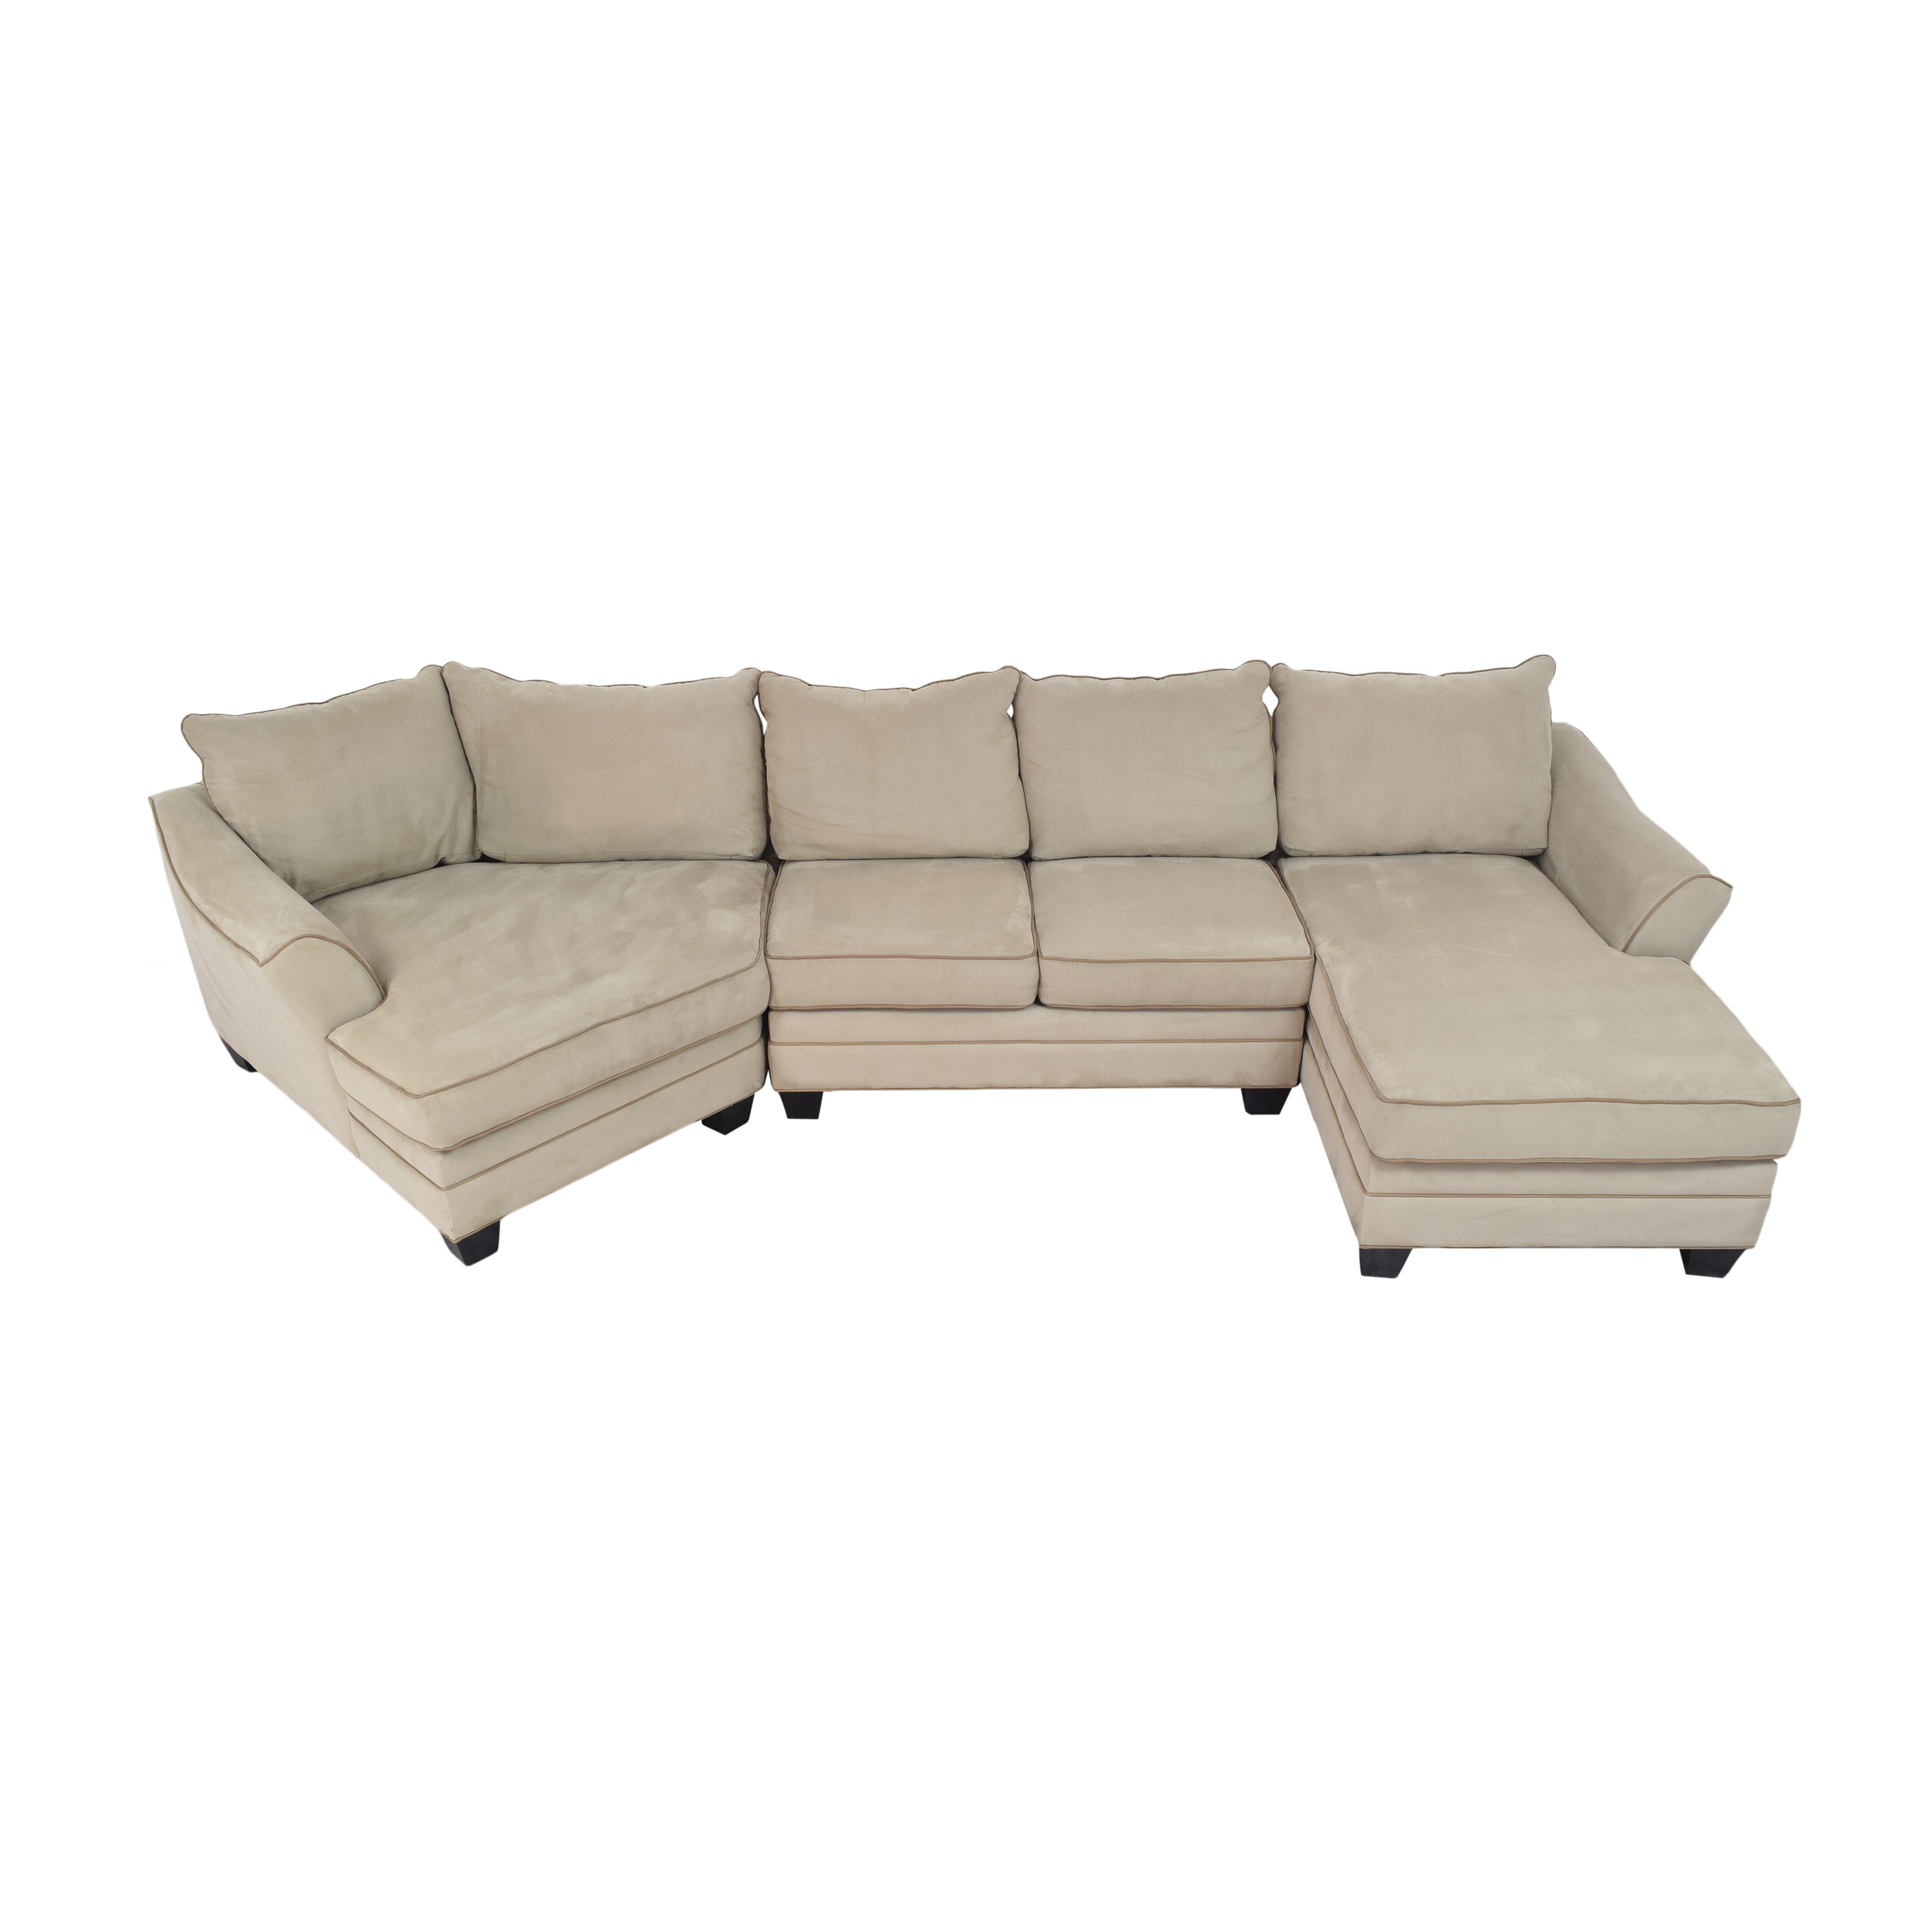 shop Raymour & Flanigan Foresthill Sectional Sofa Raymour & Flanigan Sofas